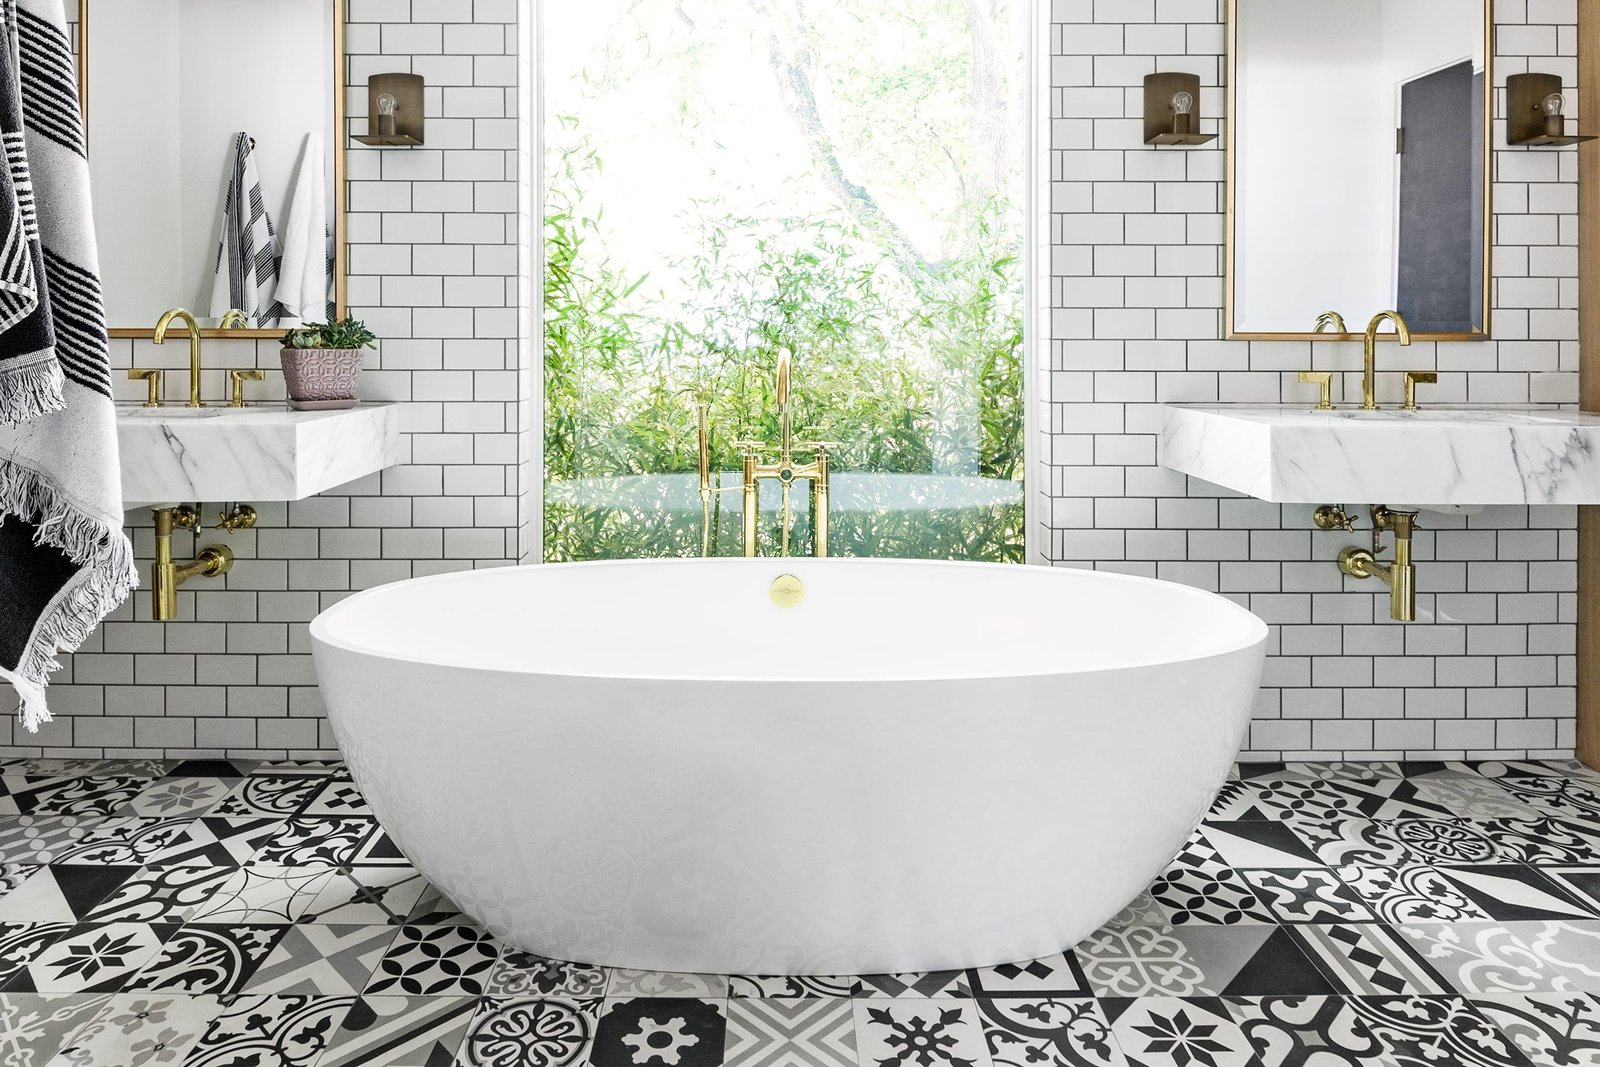 Tagged: Bath Room, Subway Tile Wall, and Ceramic Tile Floor.  Best Photos from interiors